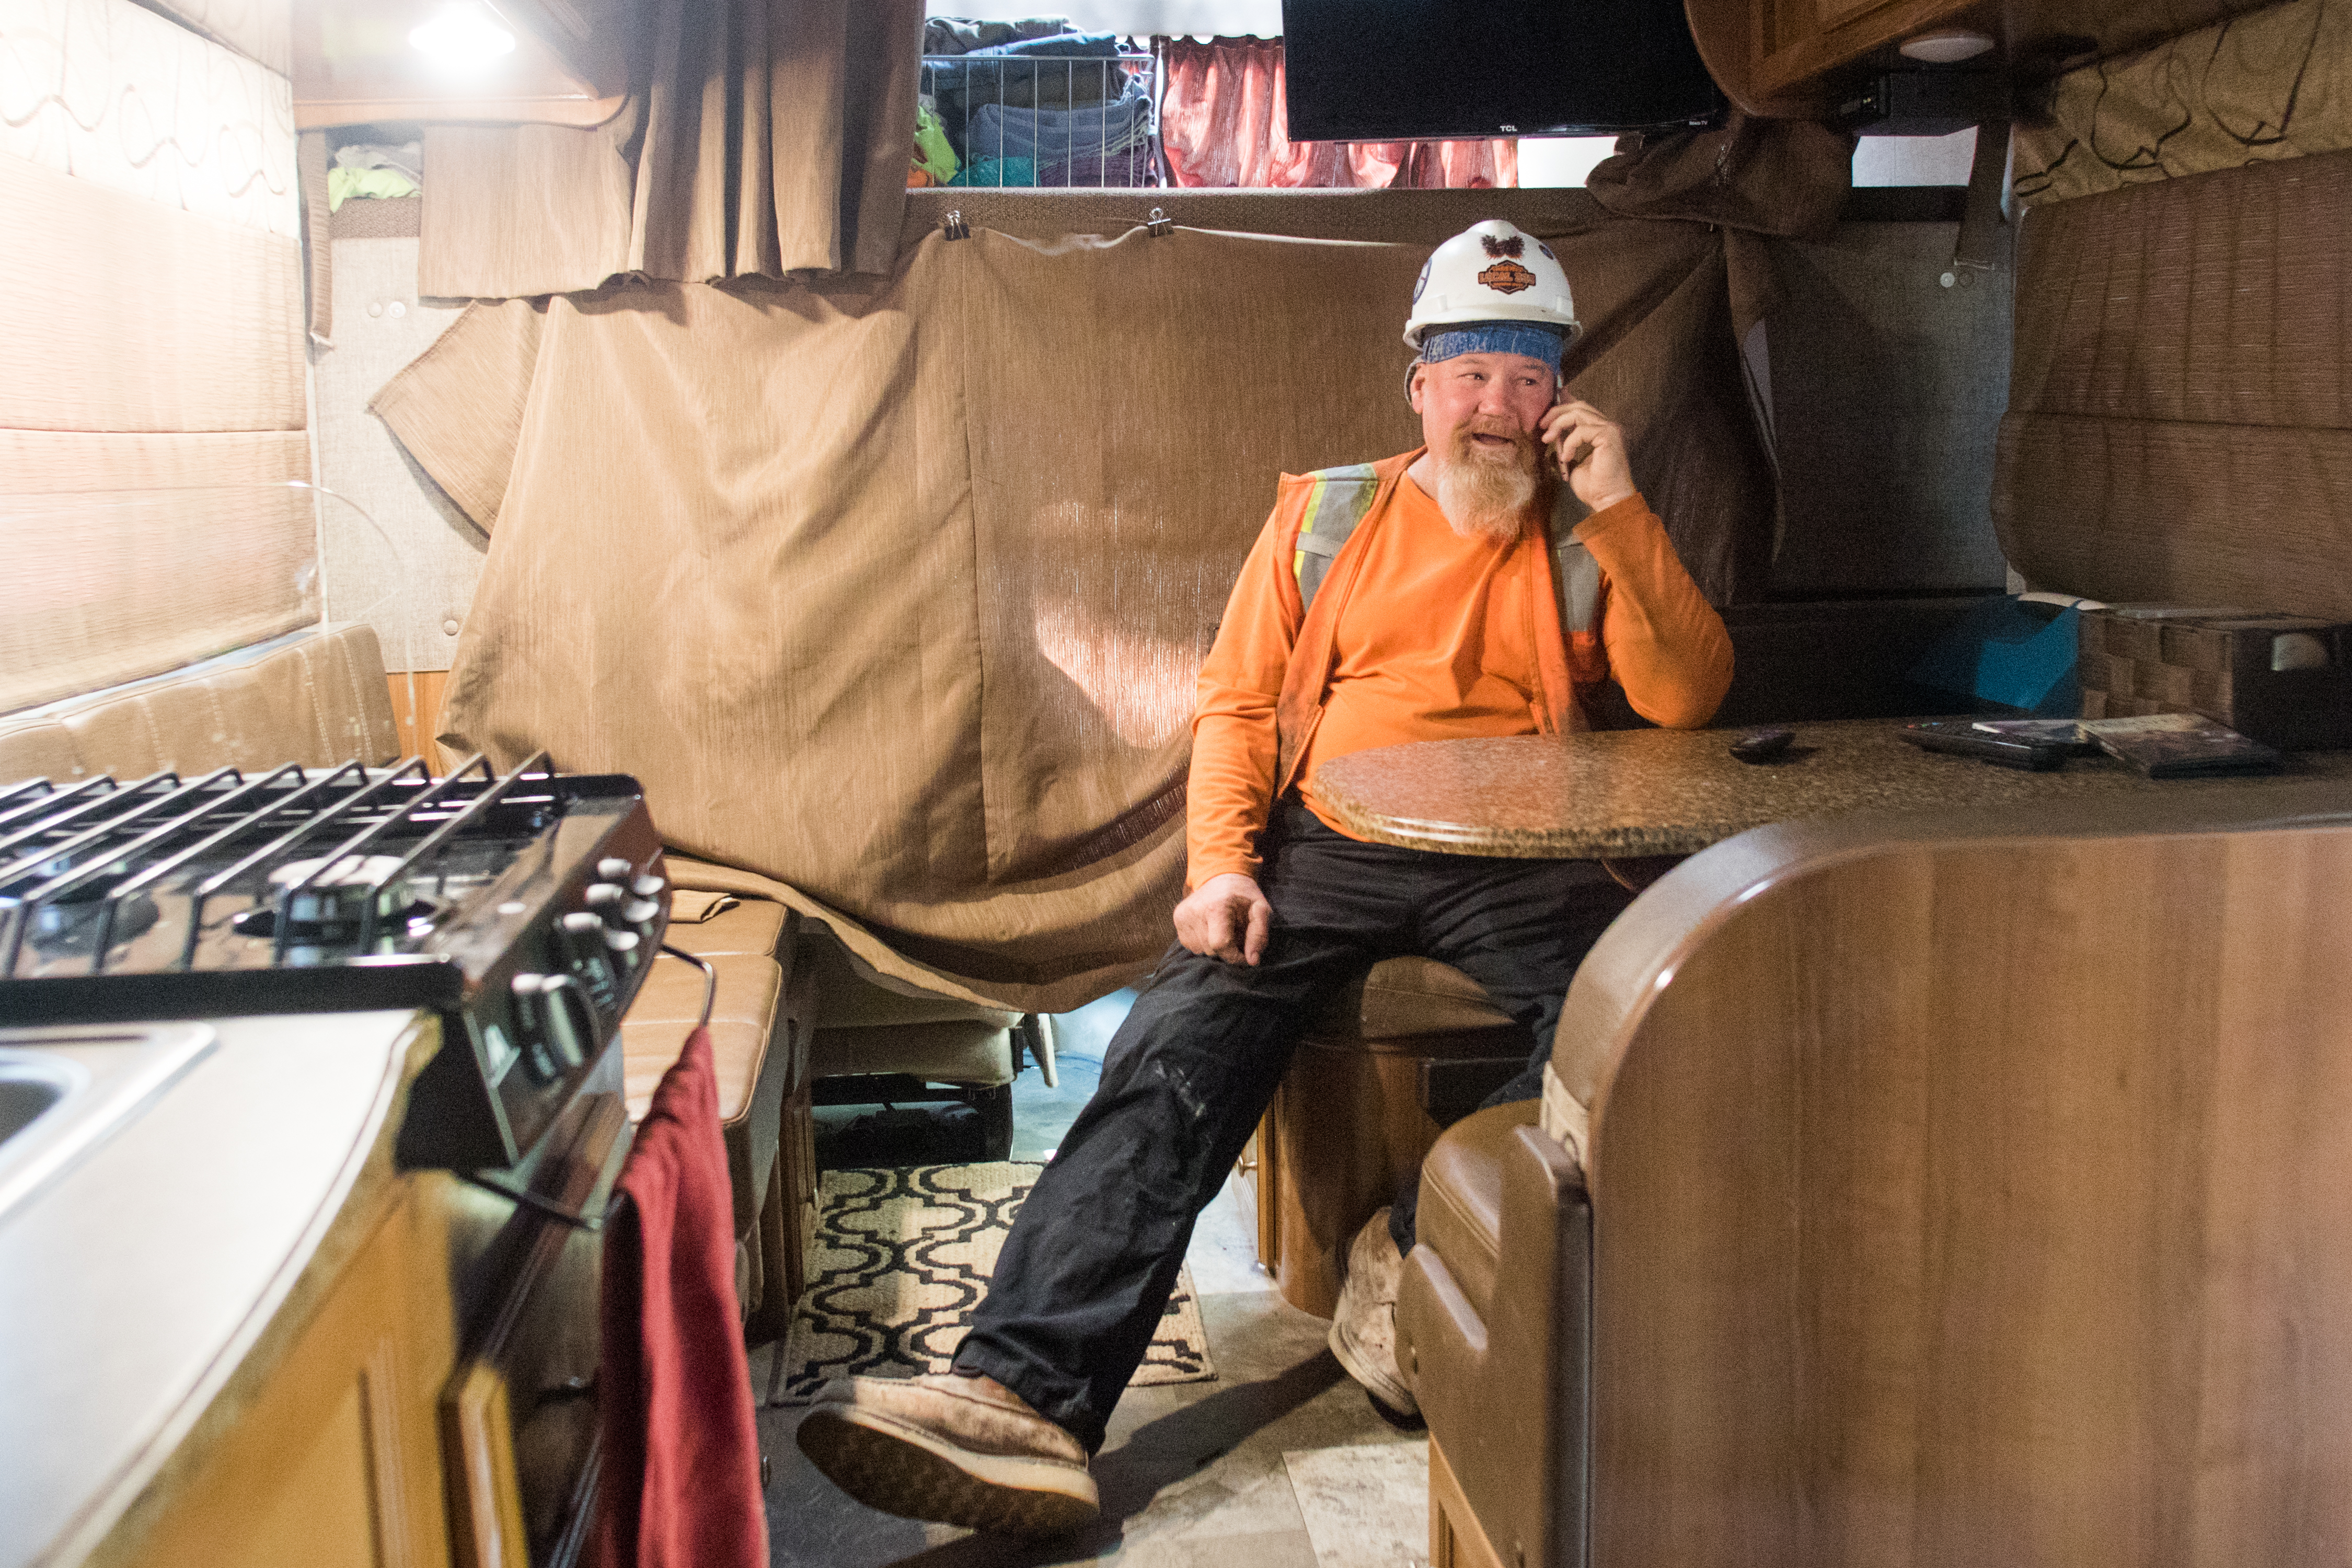 Journeyman plumber Todd Boyd talks on the phone to setup his morning ride to work.